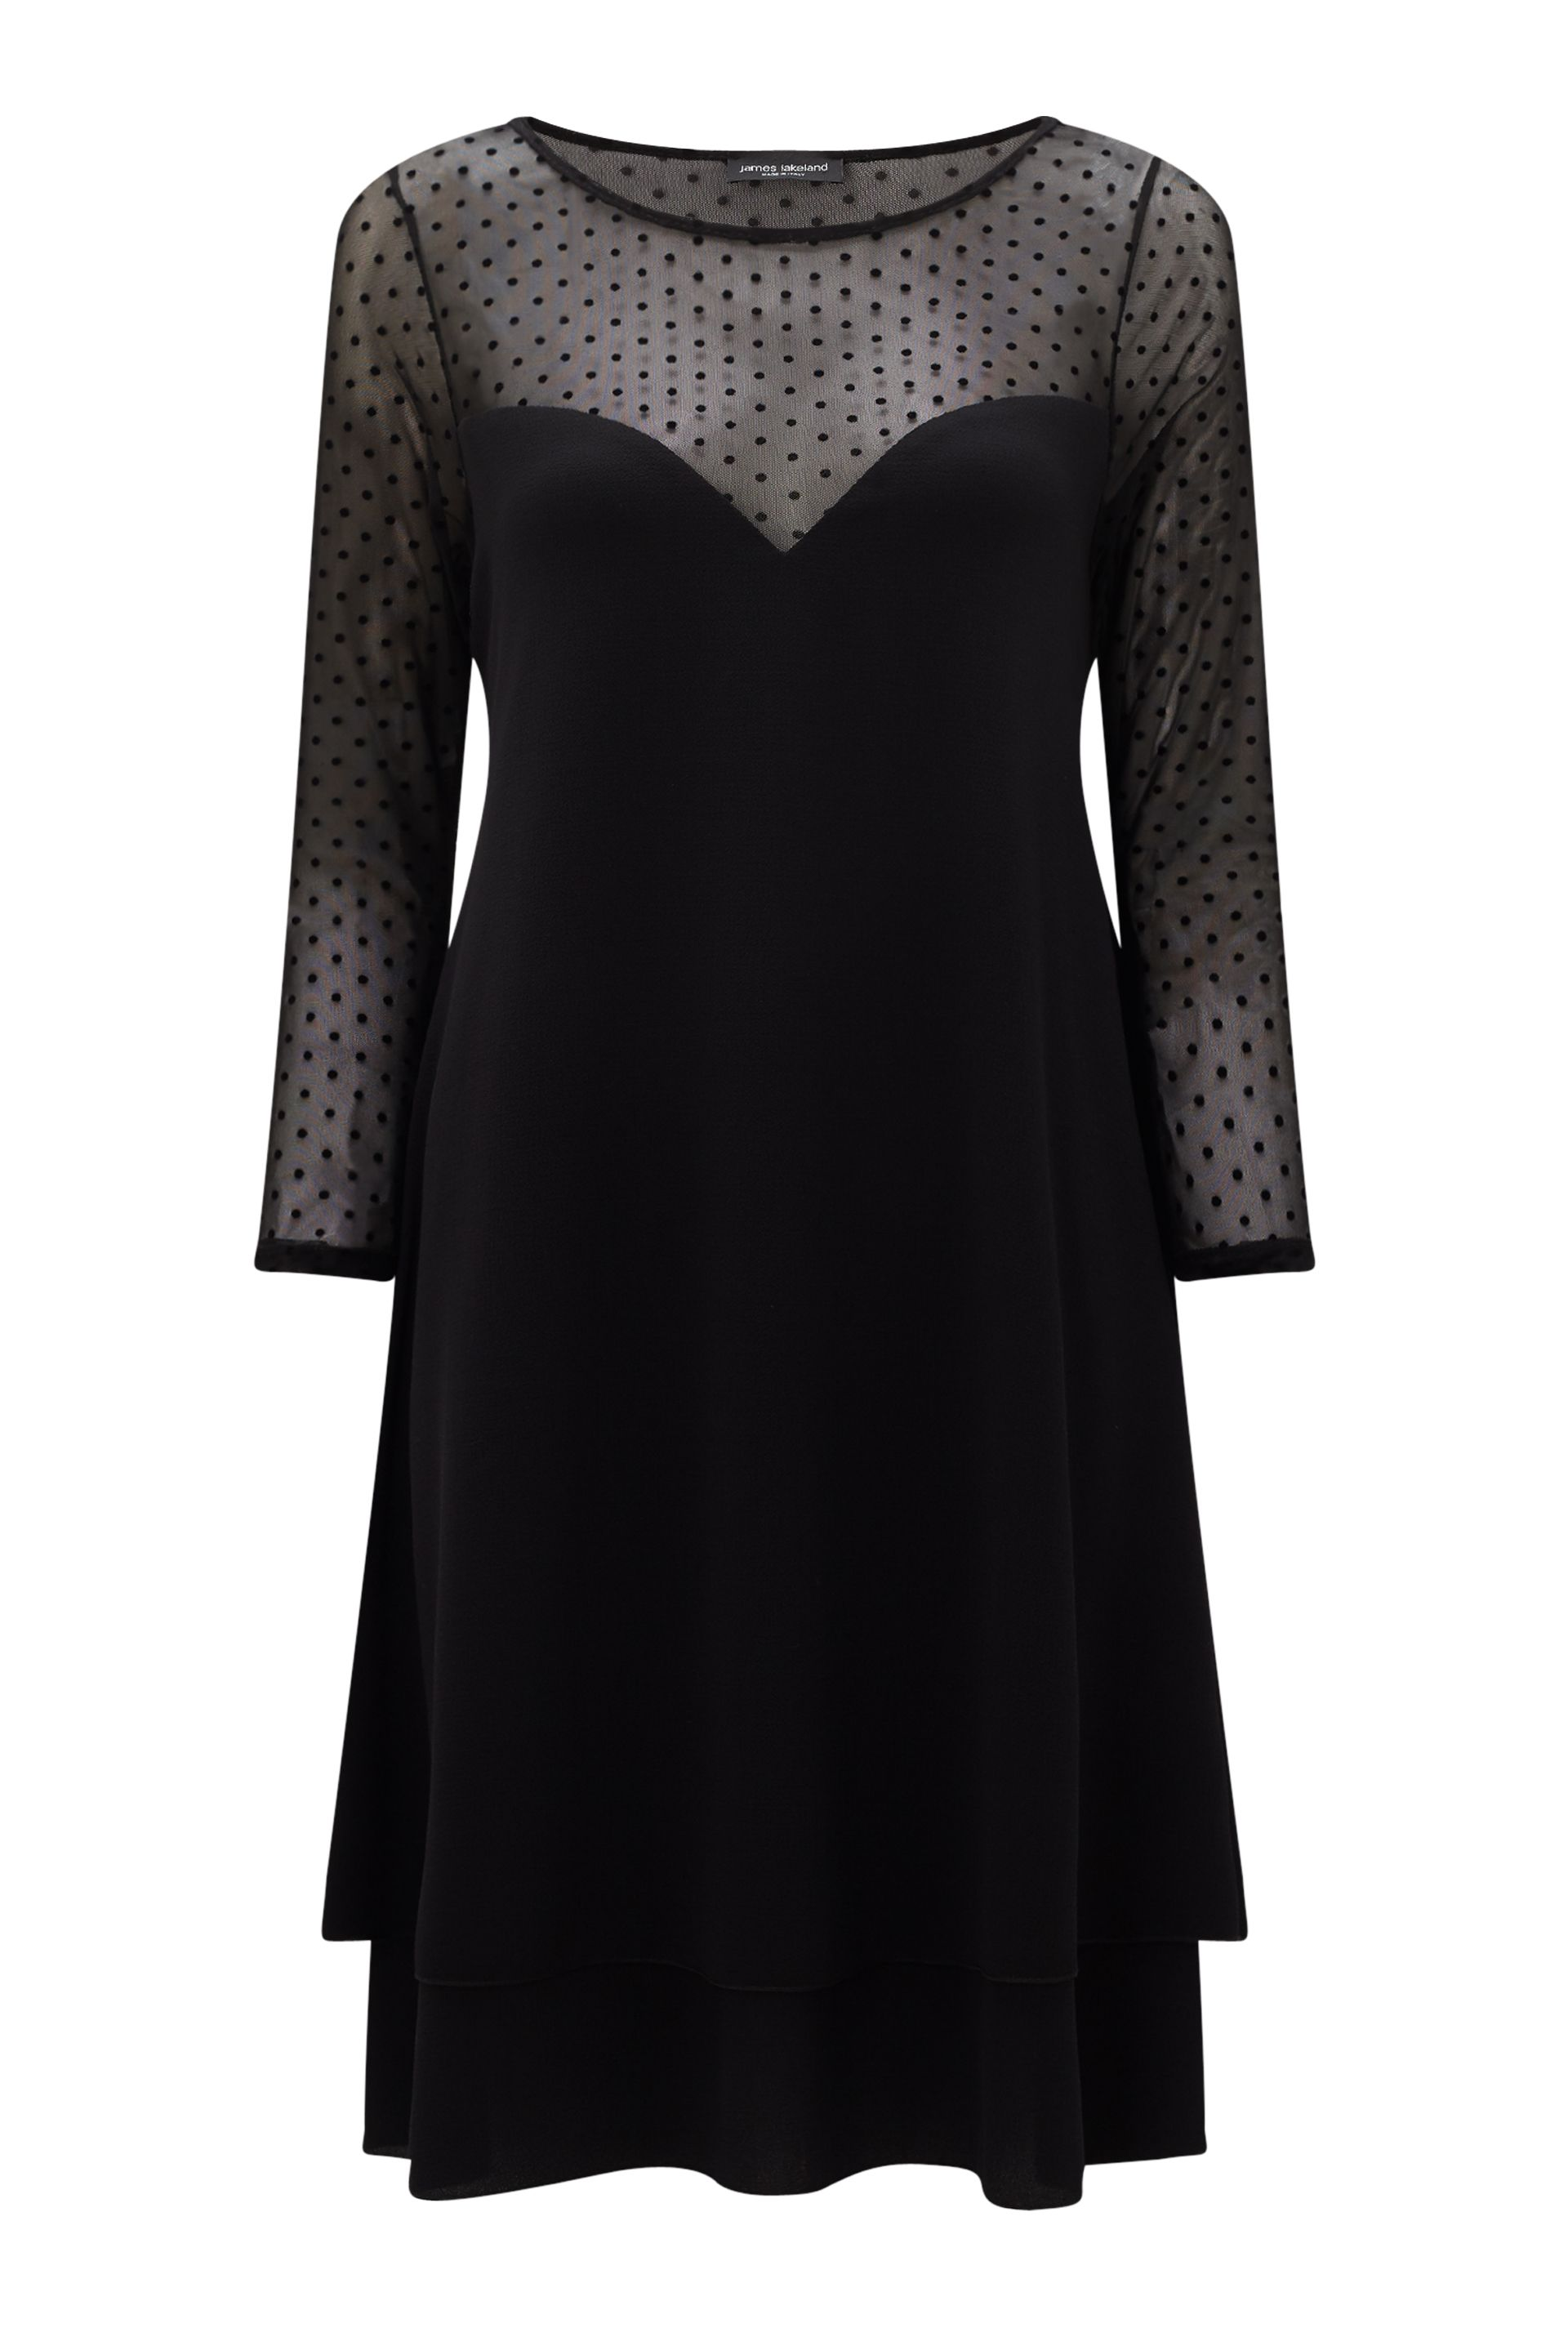 James Lakeland Sheer Sleeve Dress, Black